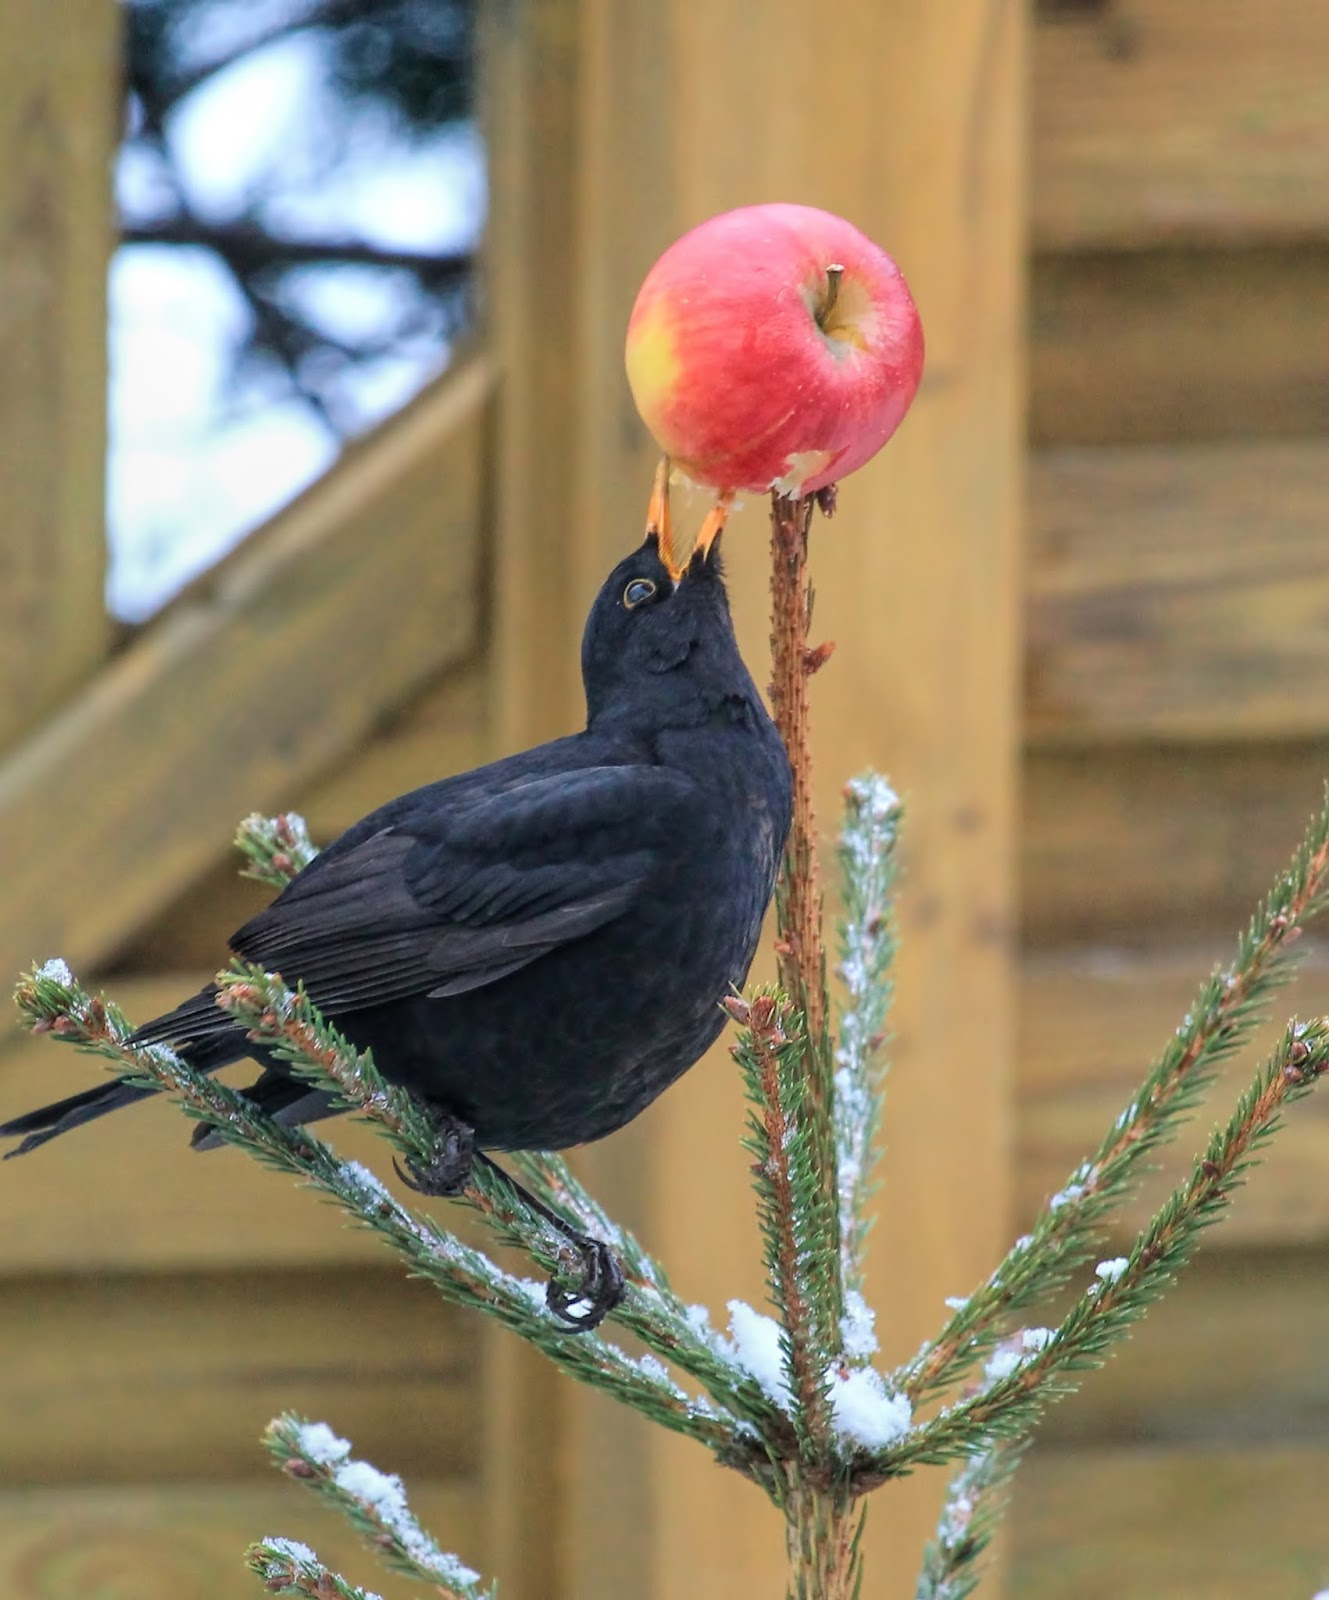 Picture of a black bird eating an apple.